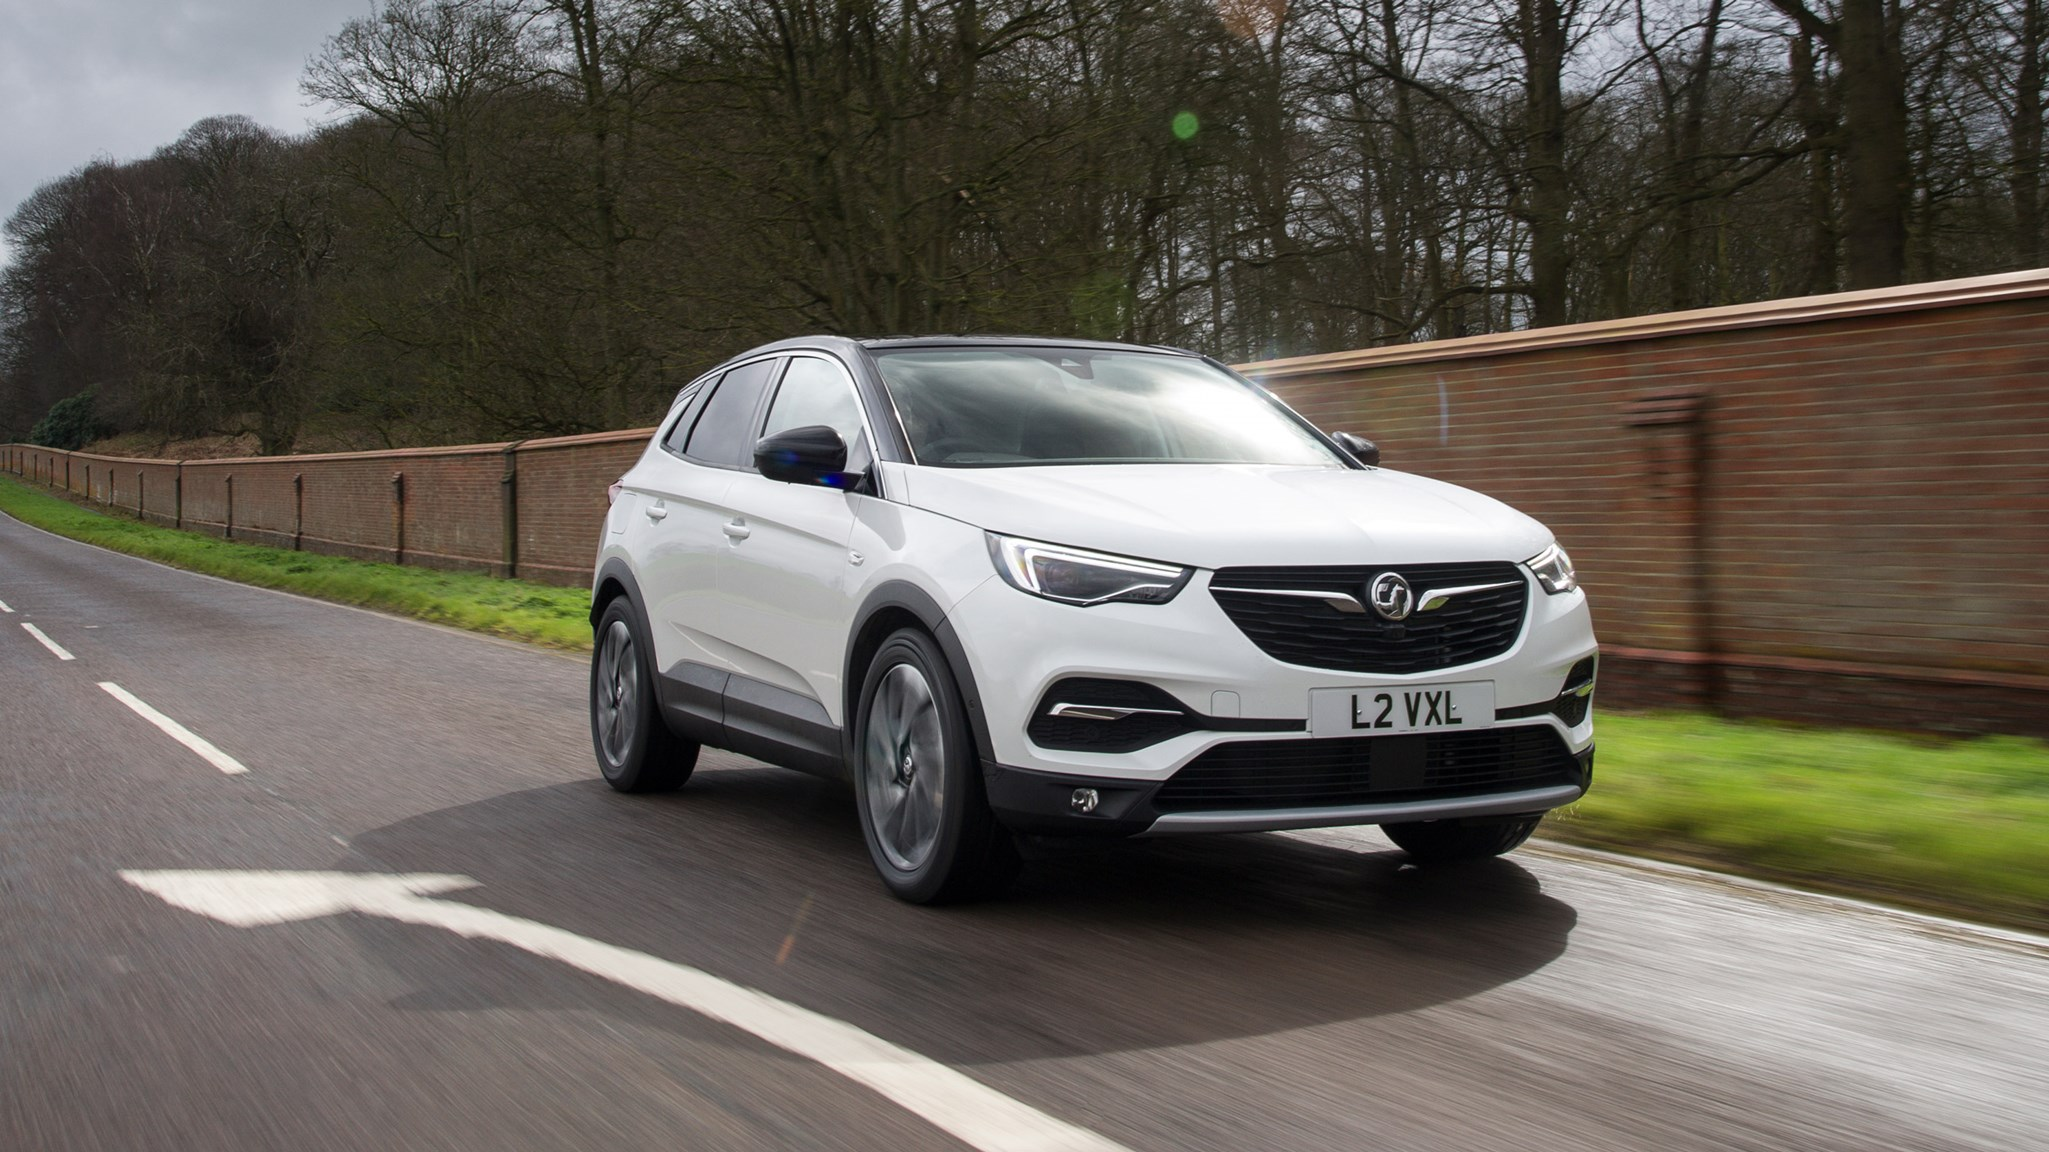 Used Tesla Model X For Sale >> Vauxhall Grandland X Ultimate review: SUV supreme or plain